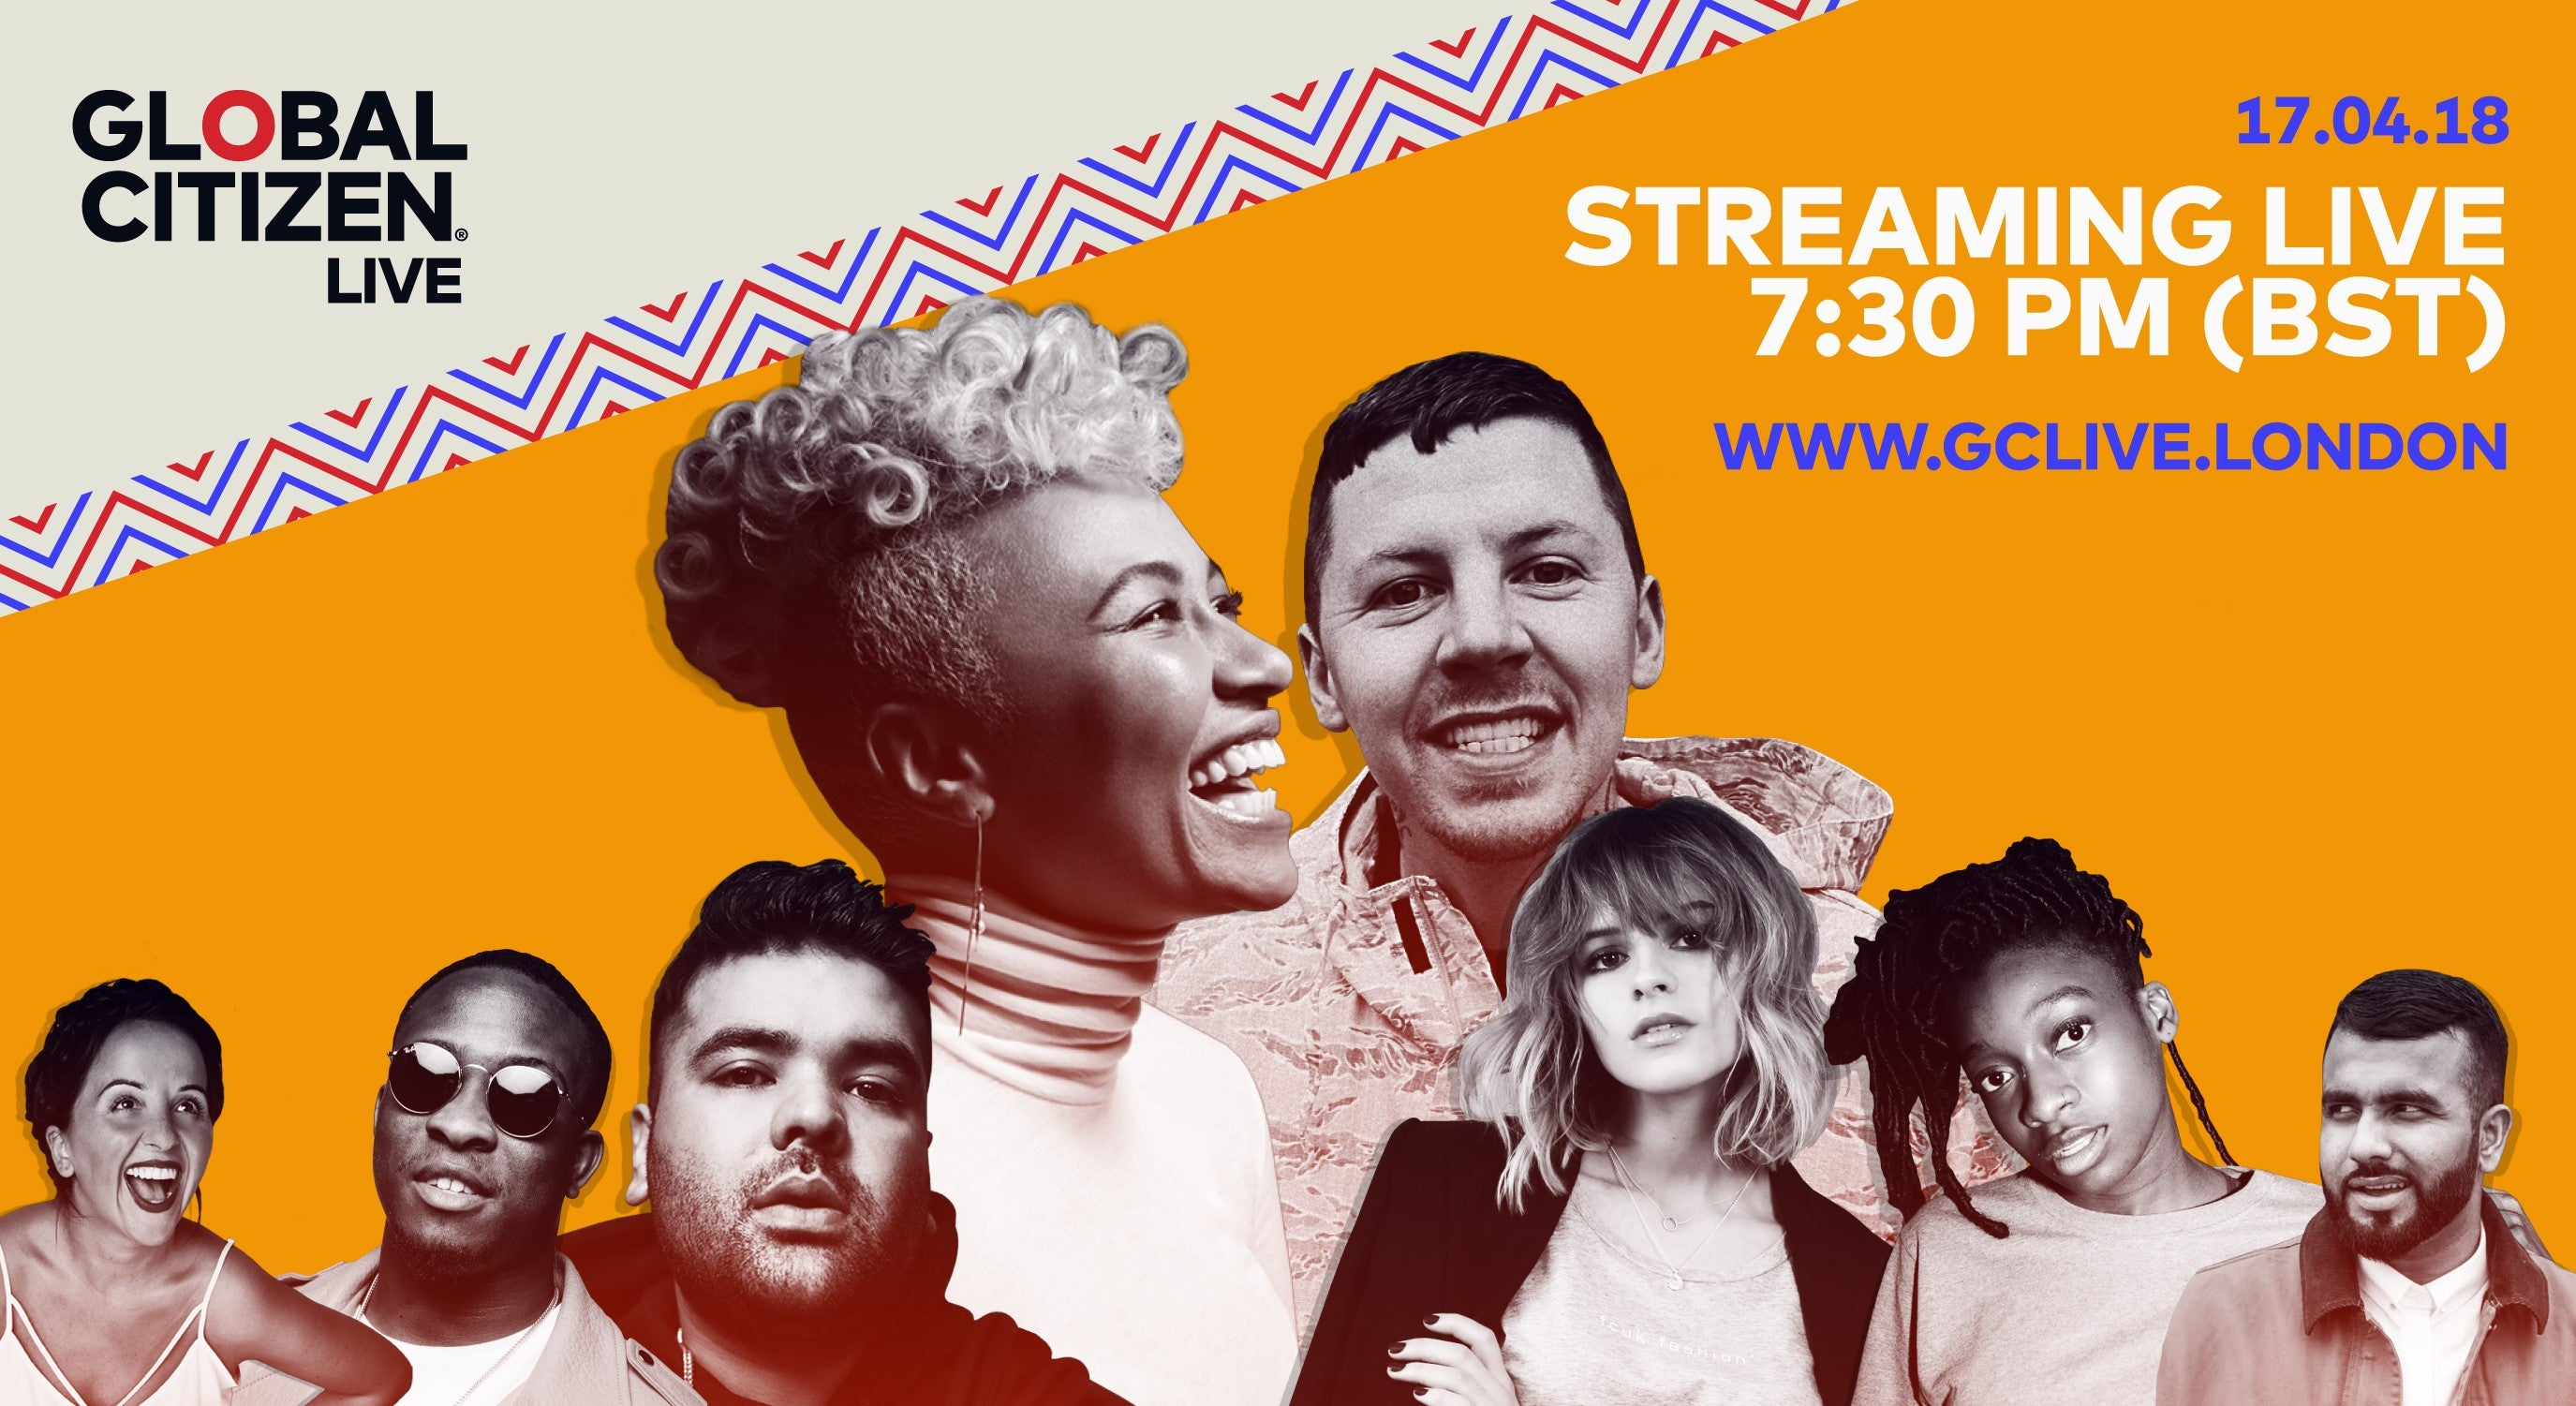 Exklusivt: Se Emeli Sandé, Professor Green, Naughty Boy med flera via livestream från Global Citizen Live i London